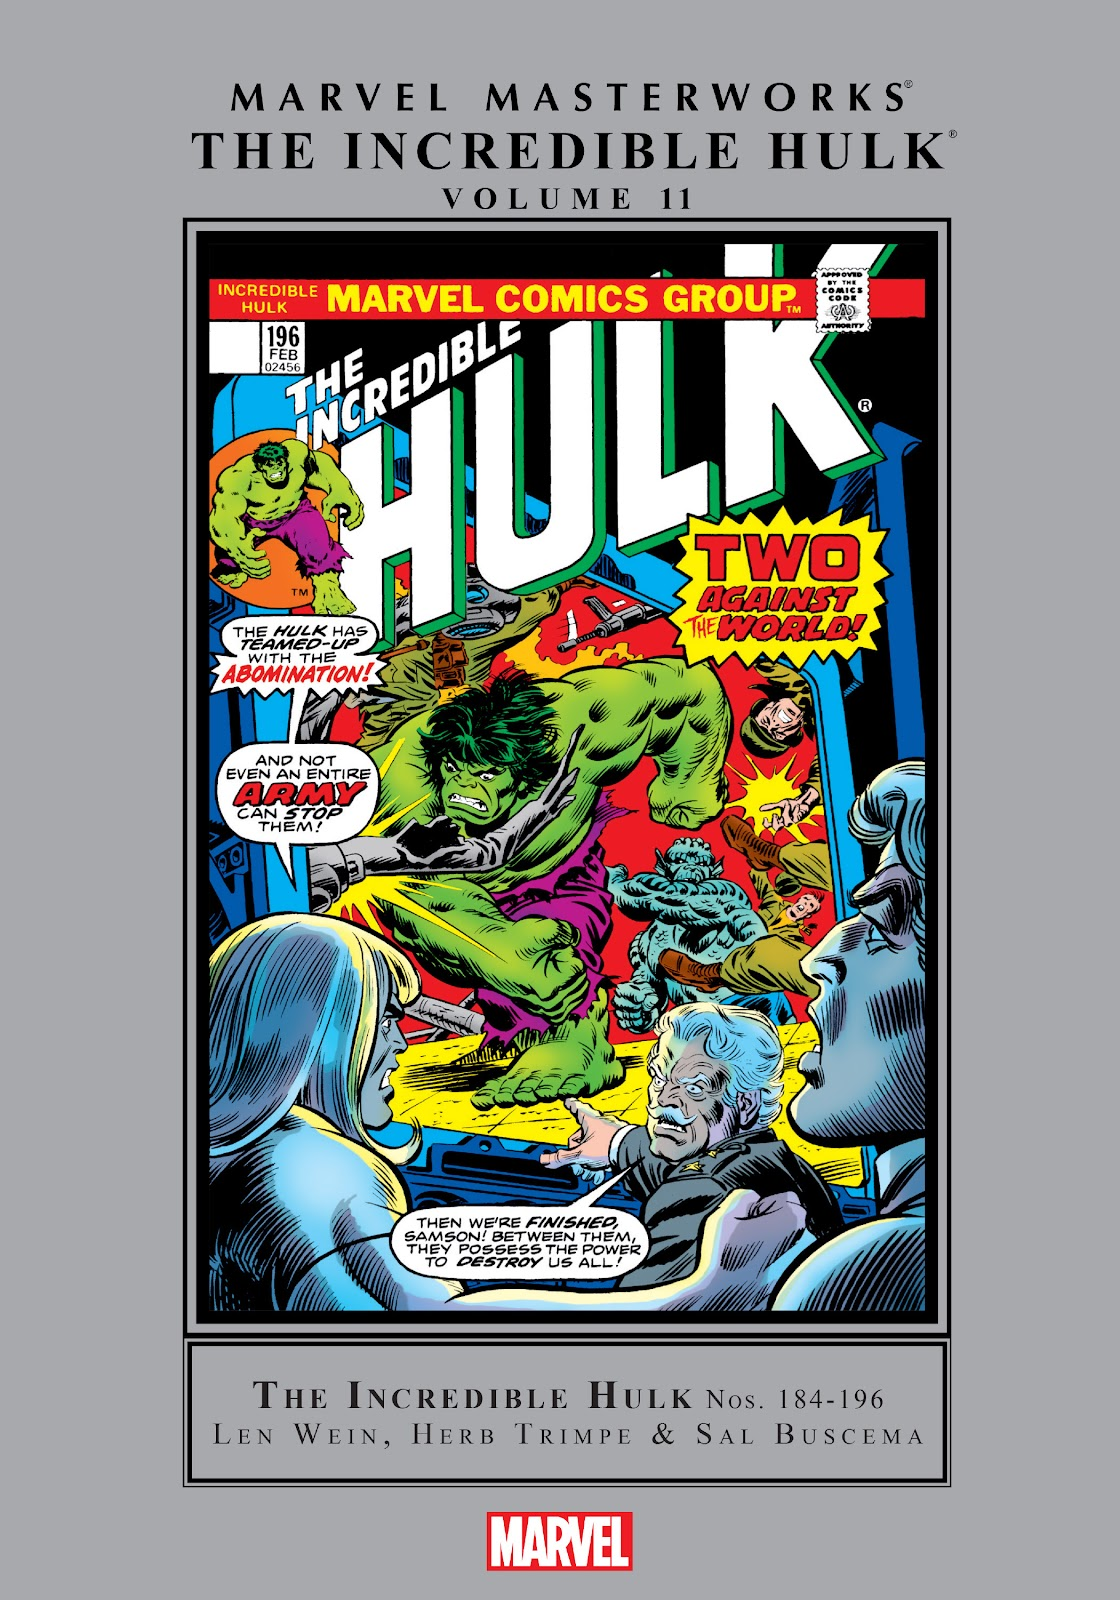 Read online Marvel Masterworks: The Incredible Hulk comic -  Issue # TPB 11 (Part 1) - 1